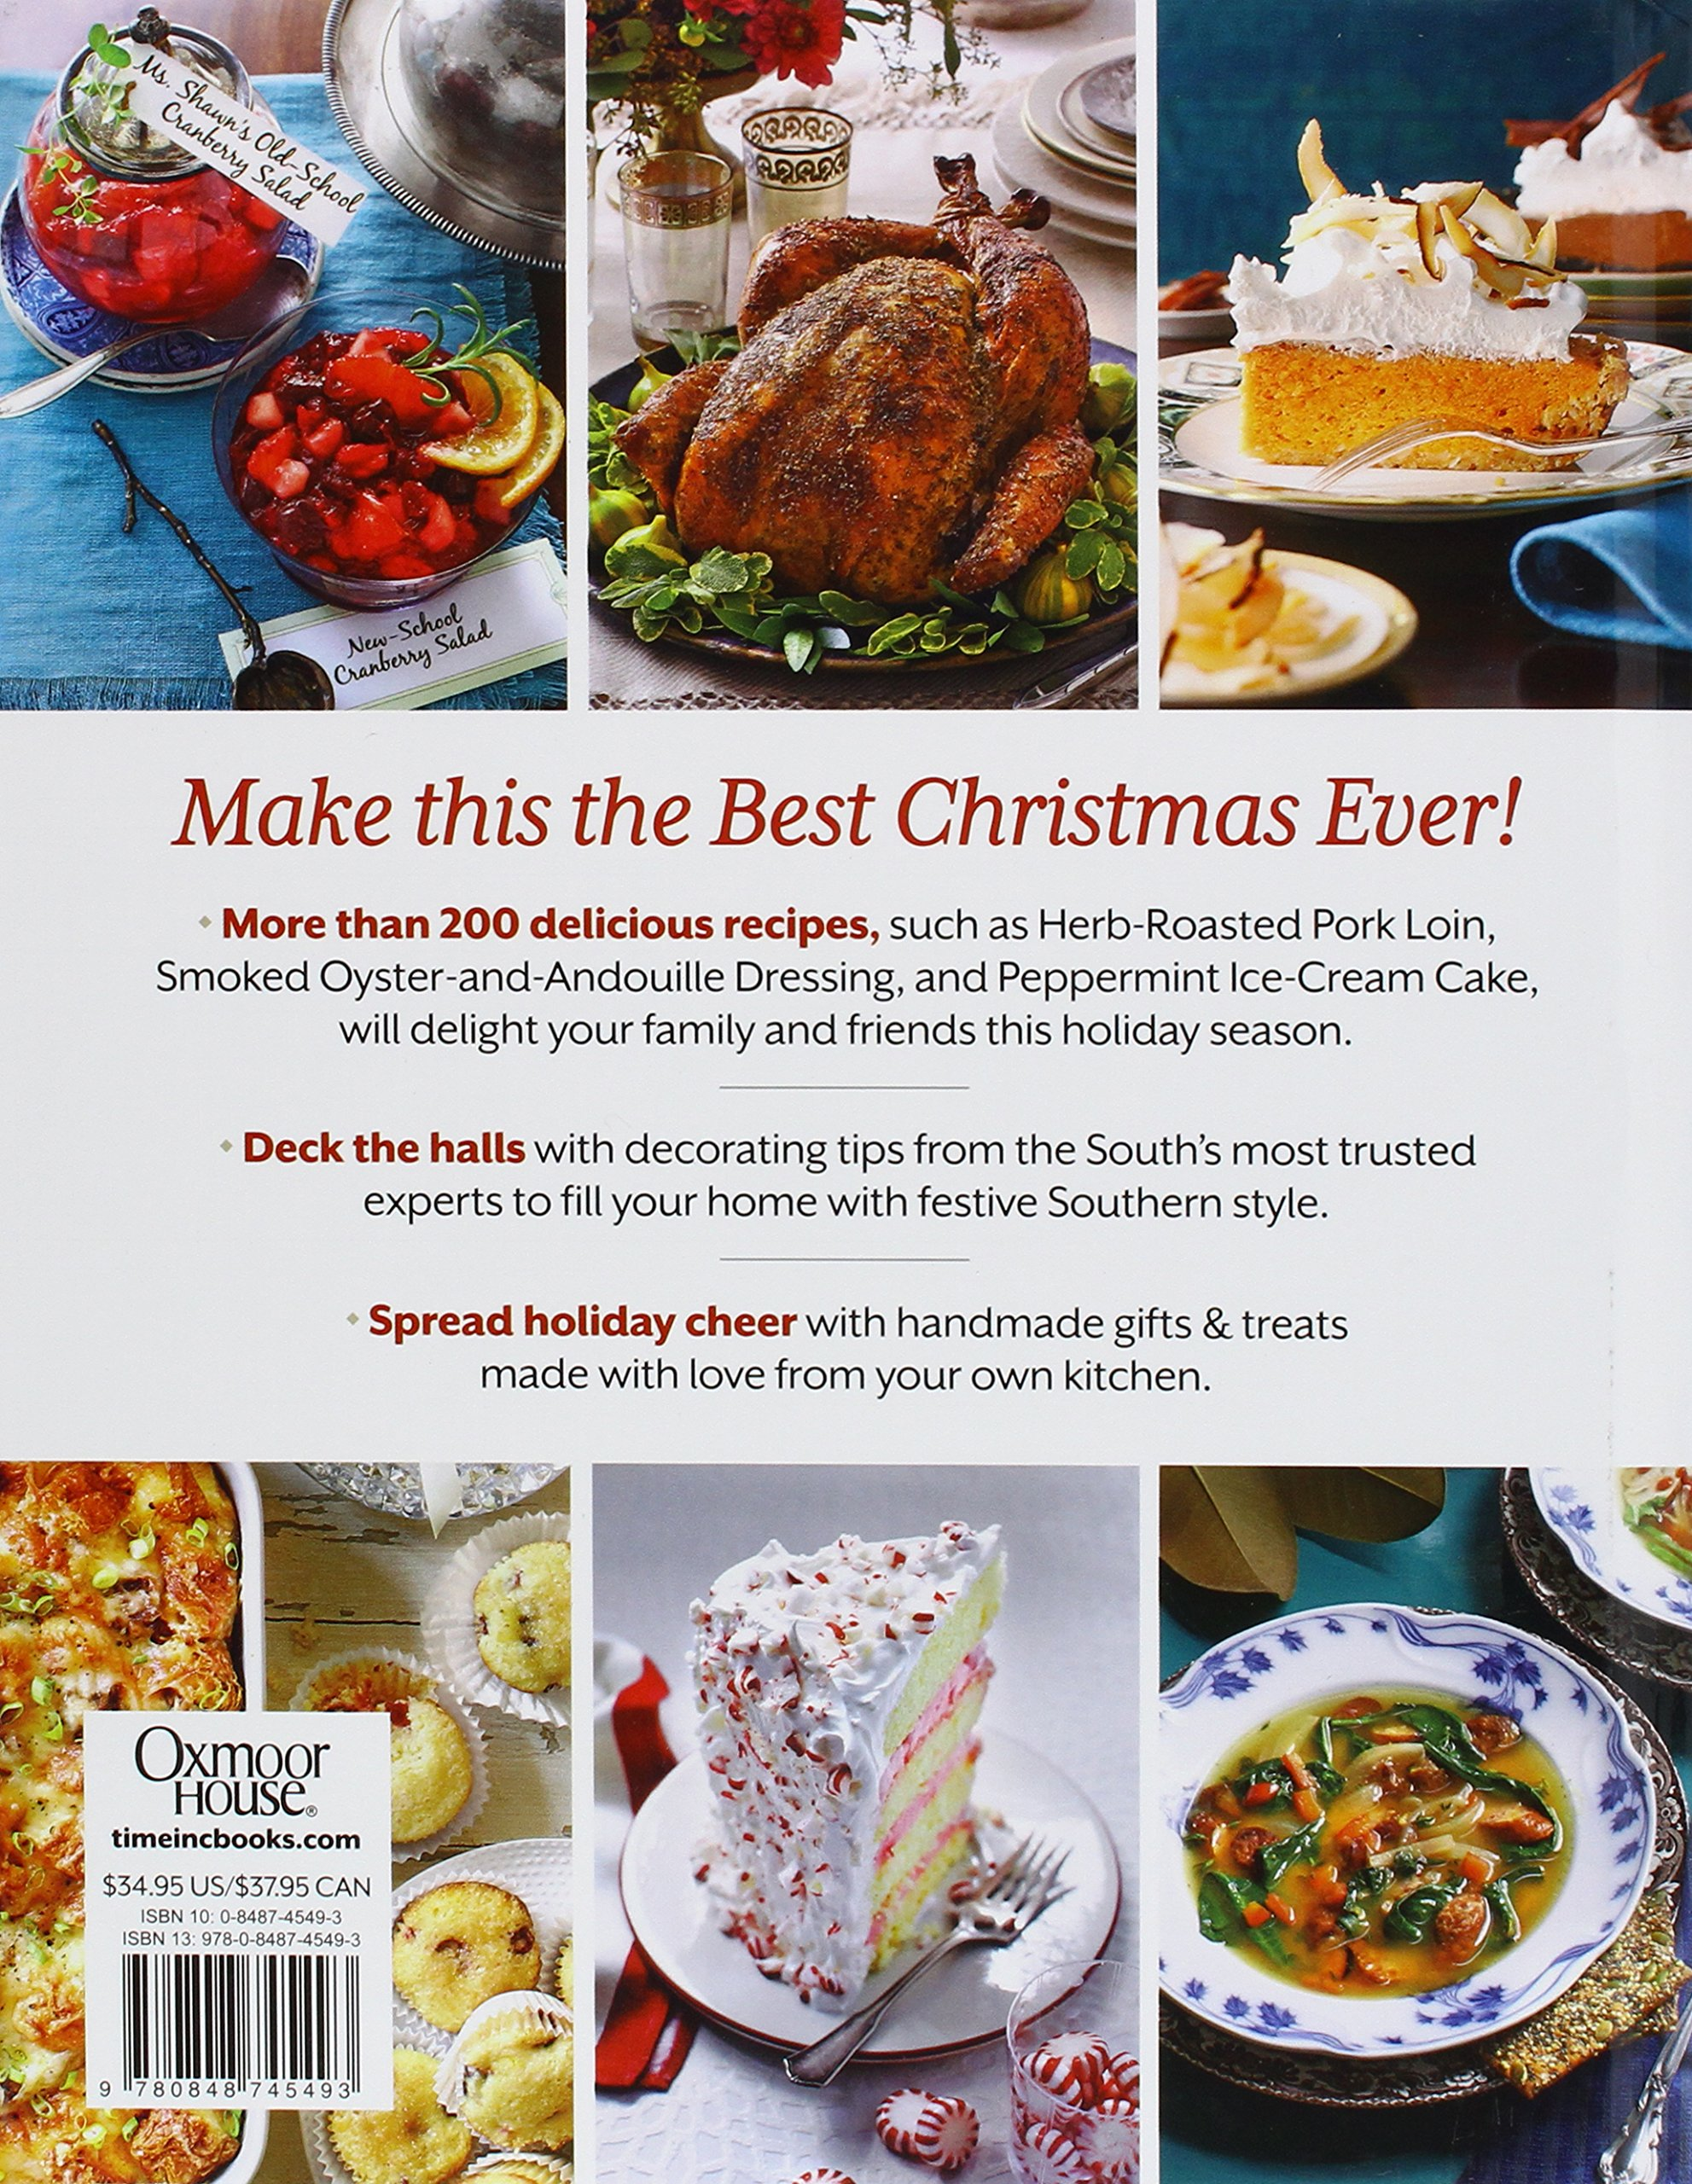 Southern Living Home For The Holidays Cookbook: Favorite Holiday Recipes  And Easy Decorating Ideas: The Editors Of Southern Living Magazine:  9780848745493: ...